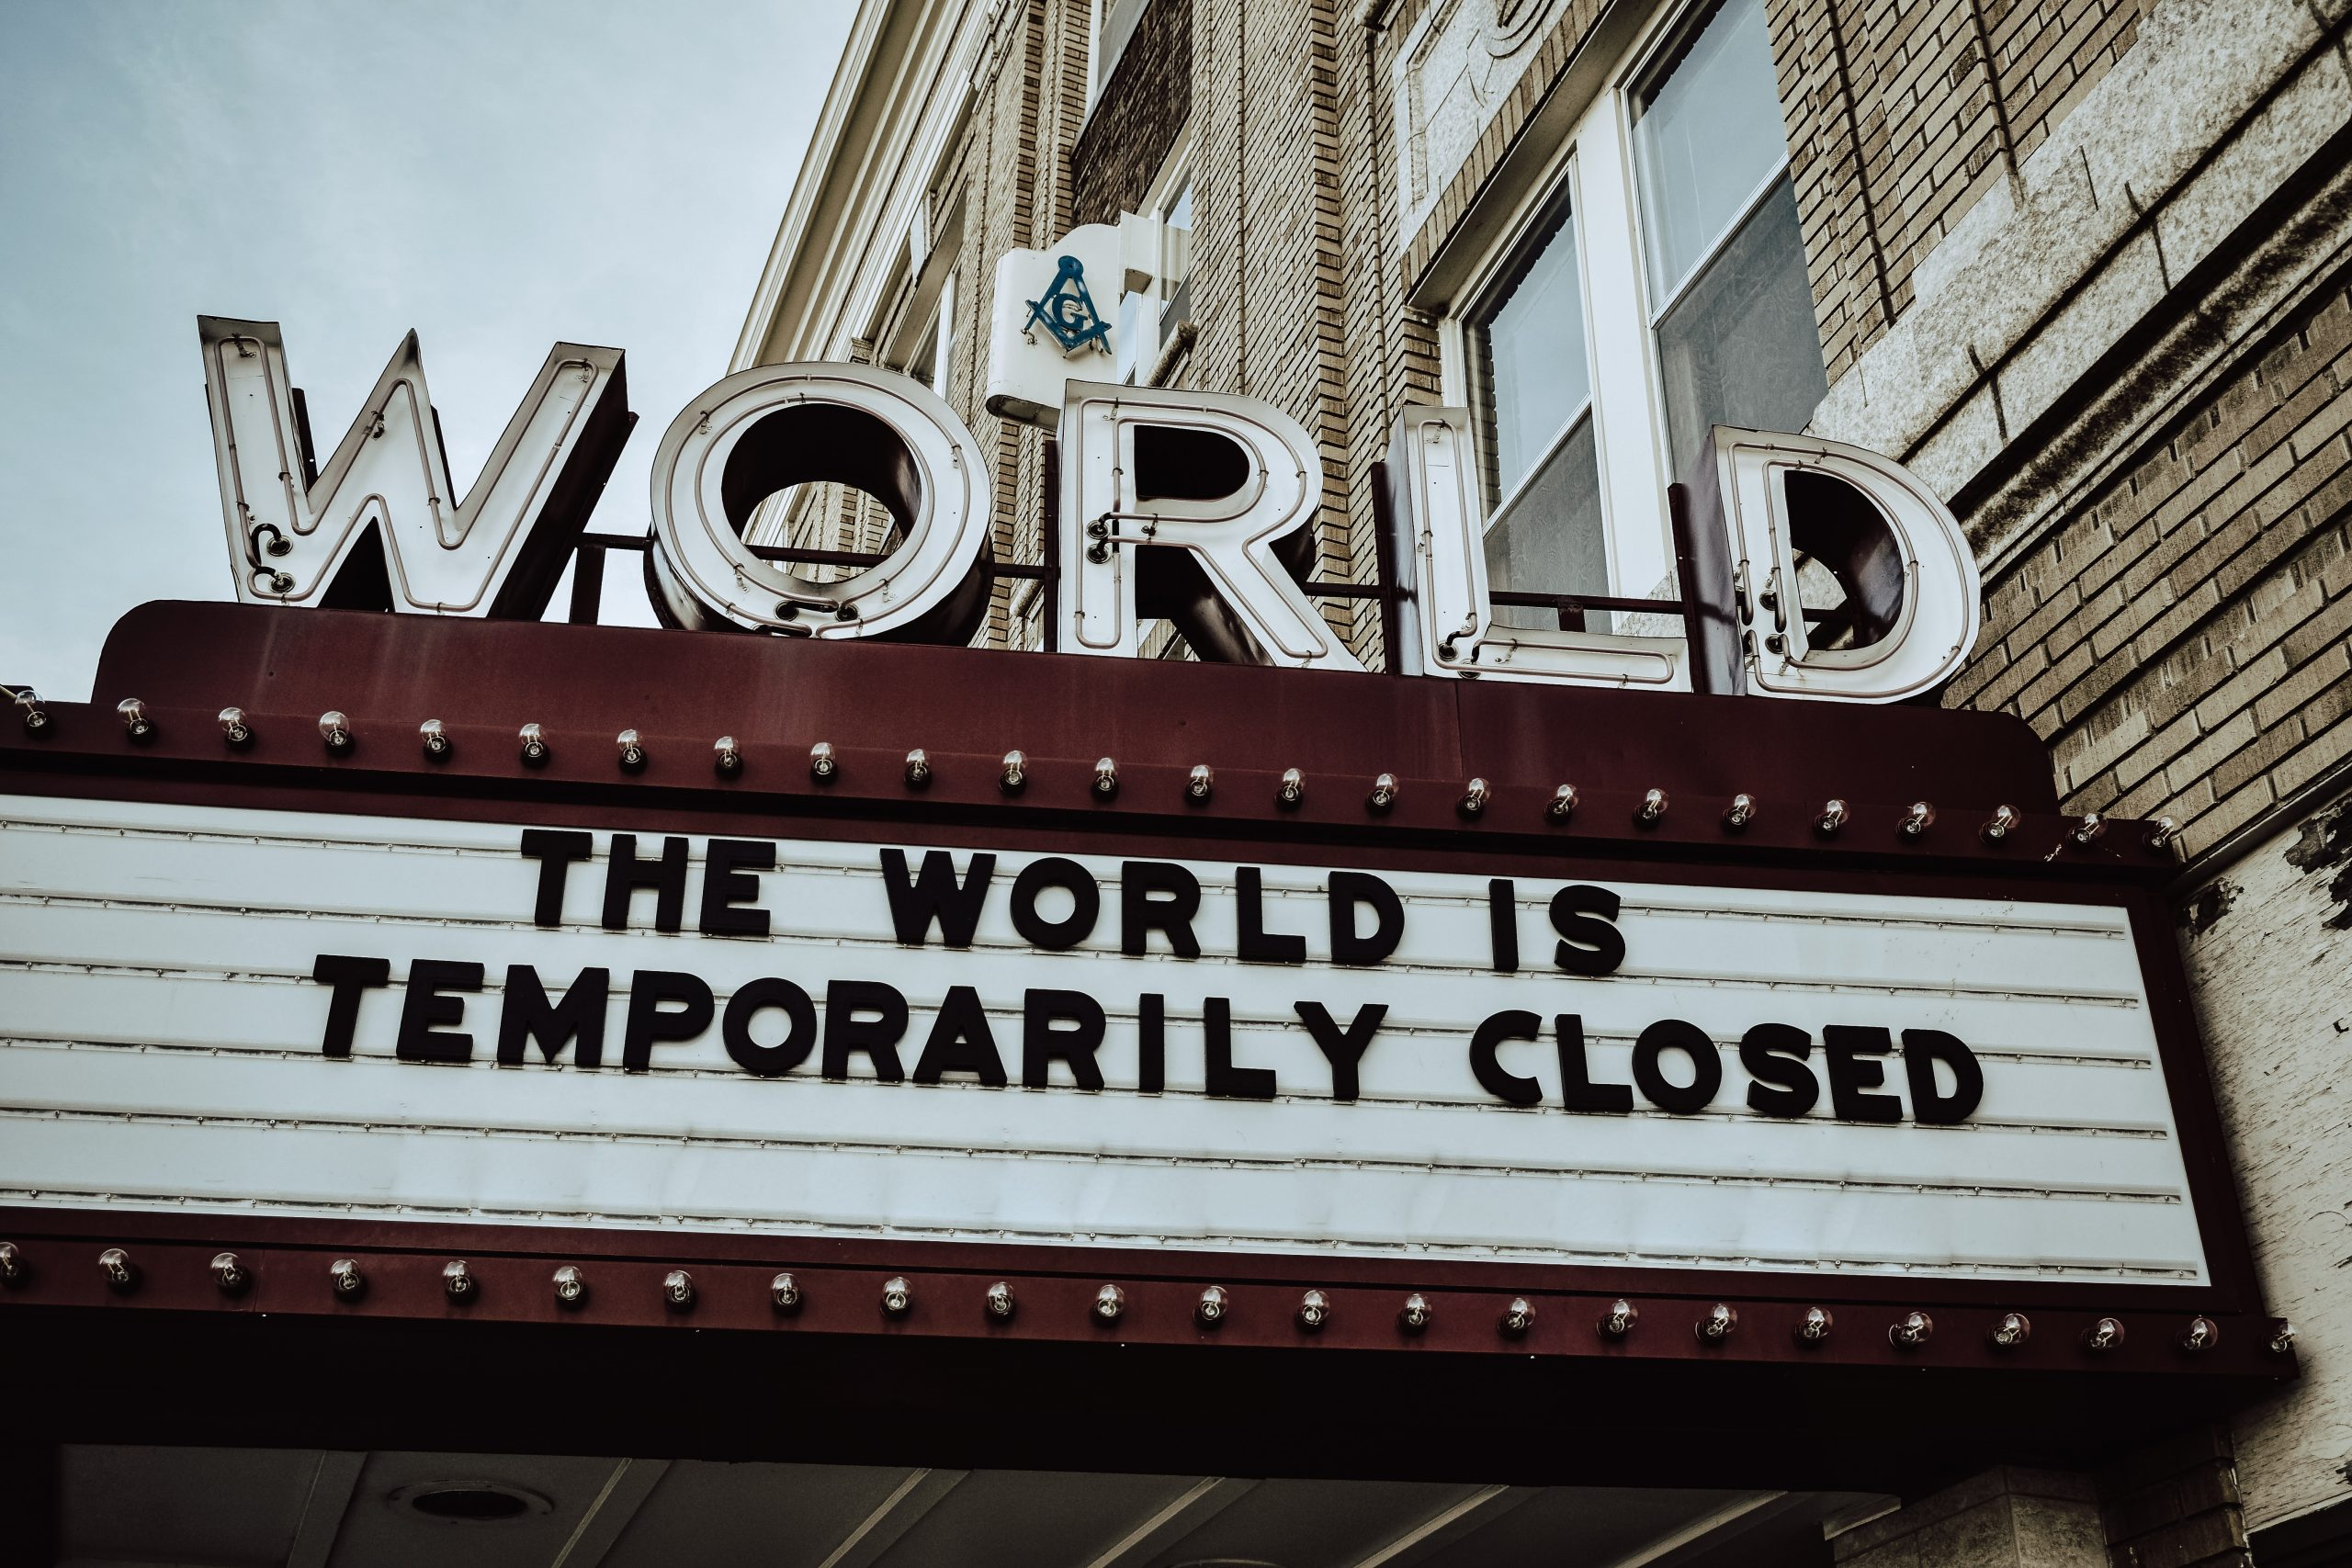 Sign reading the world is temporary closed